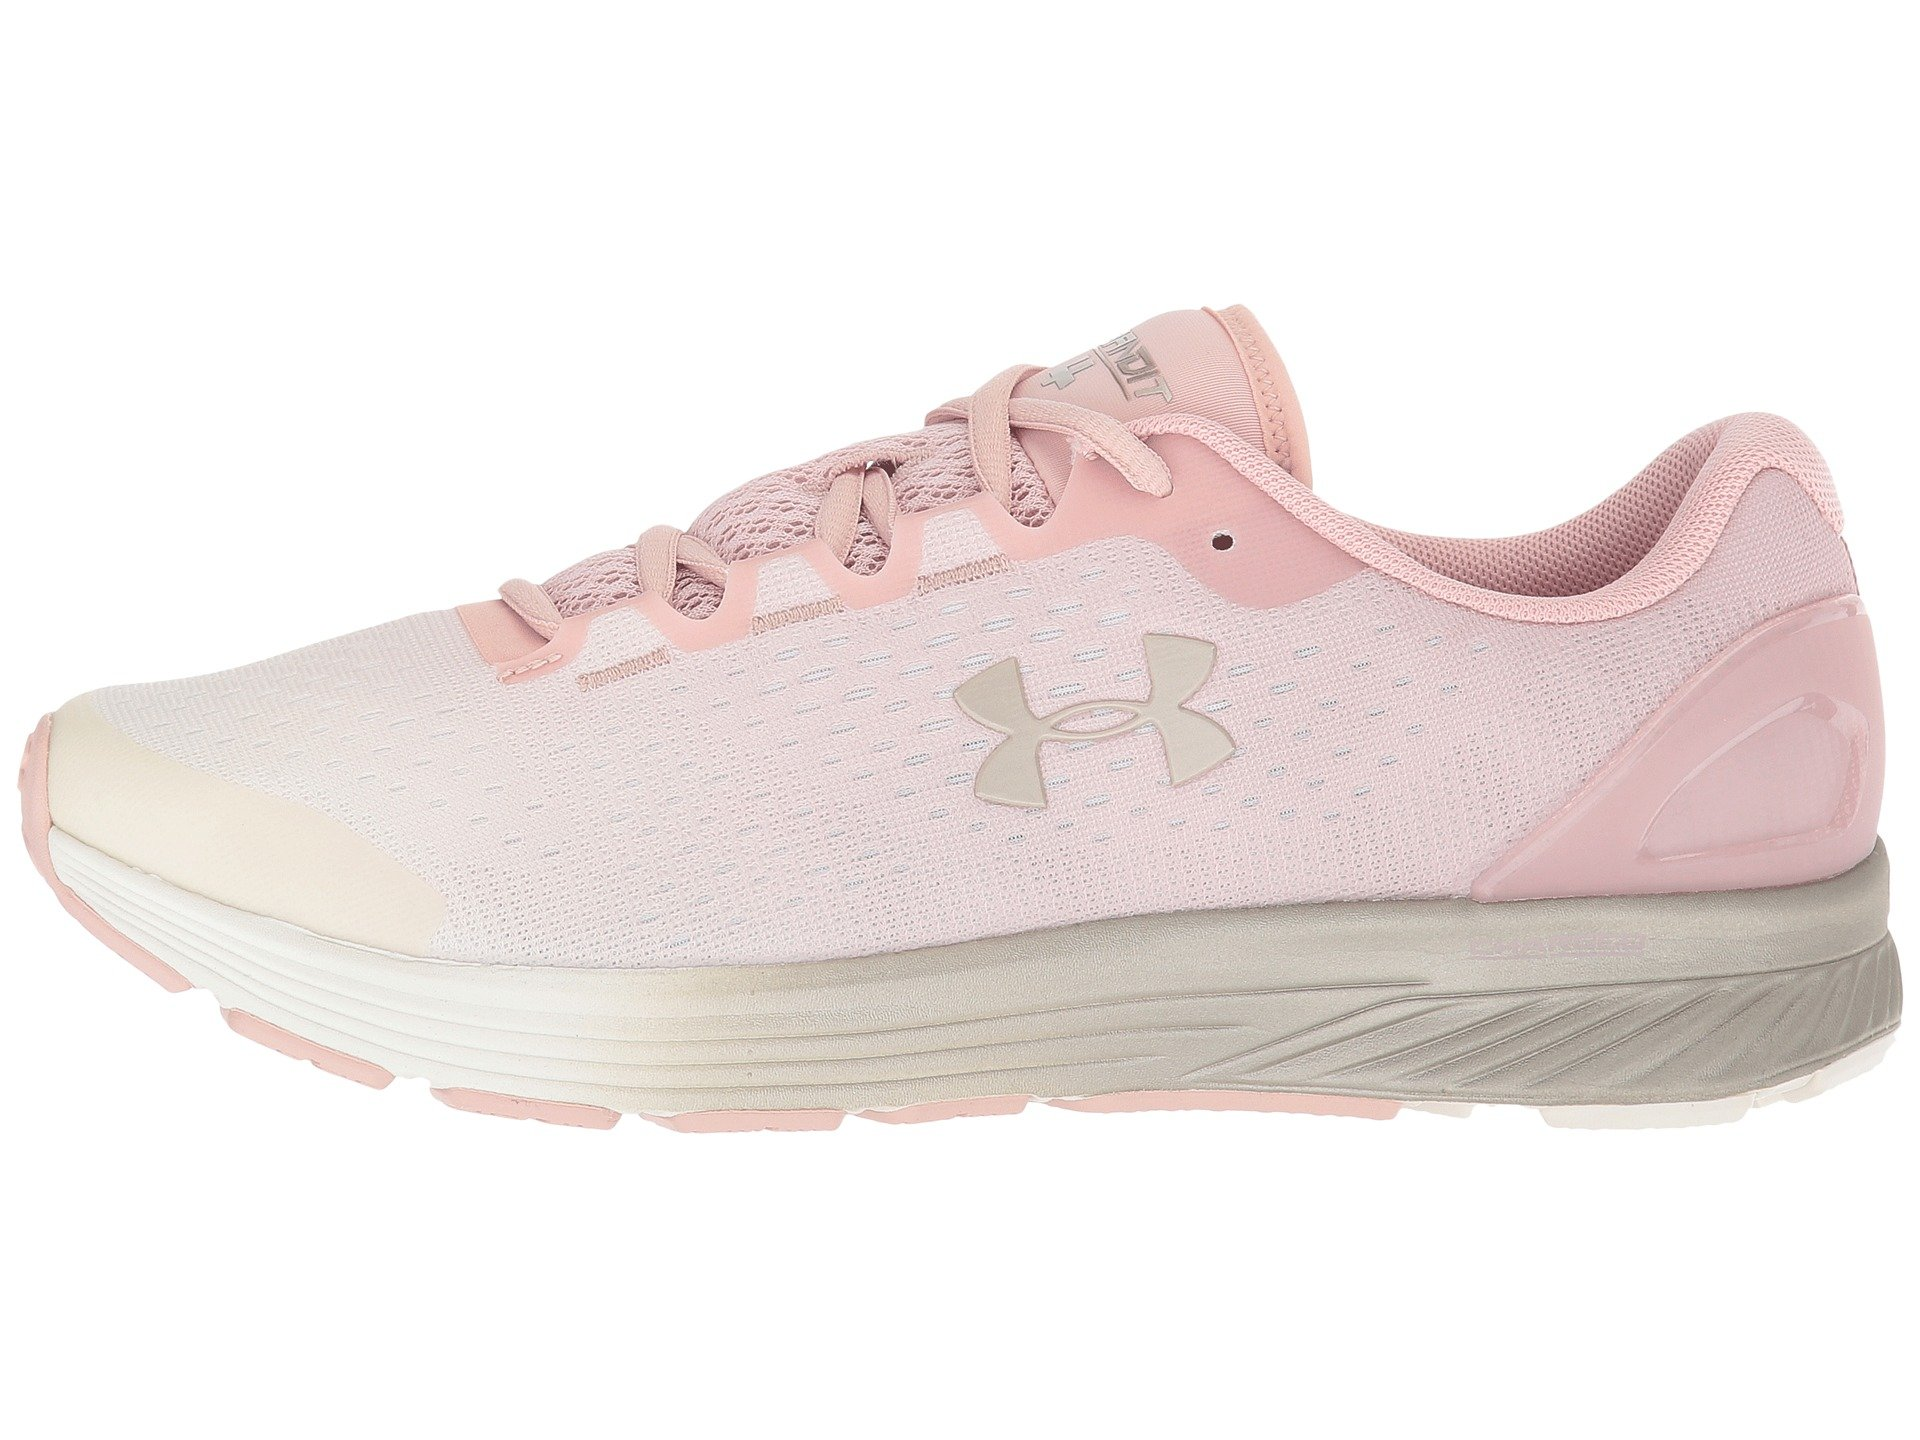 578909c5fa62 Under Armour Running Shoes - 9 Best Shoes from Under Armour